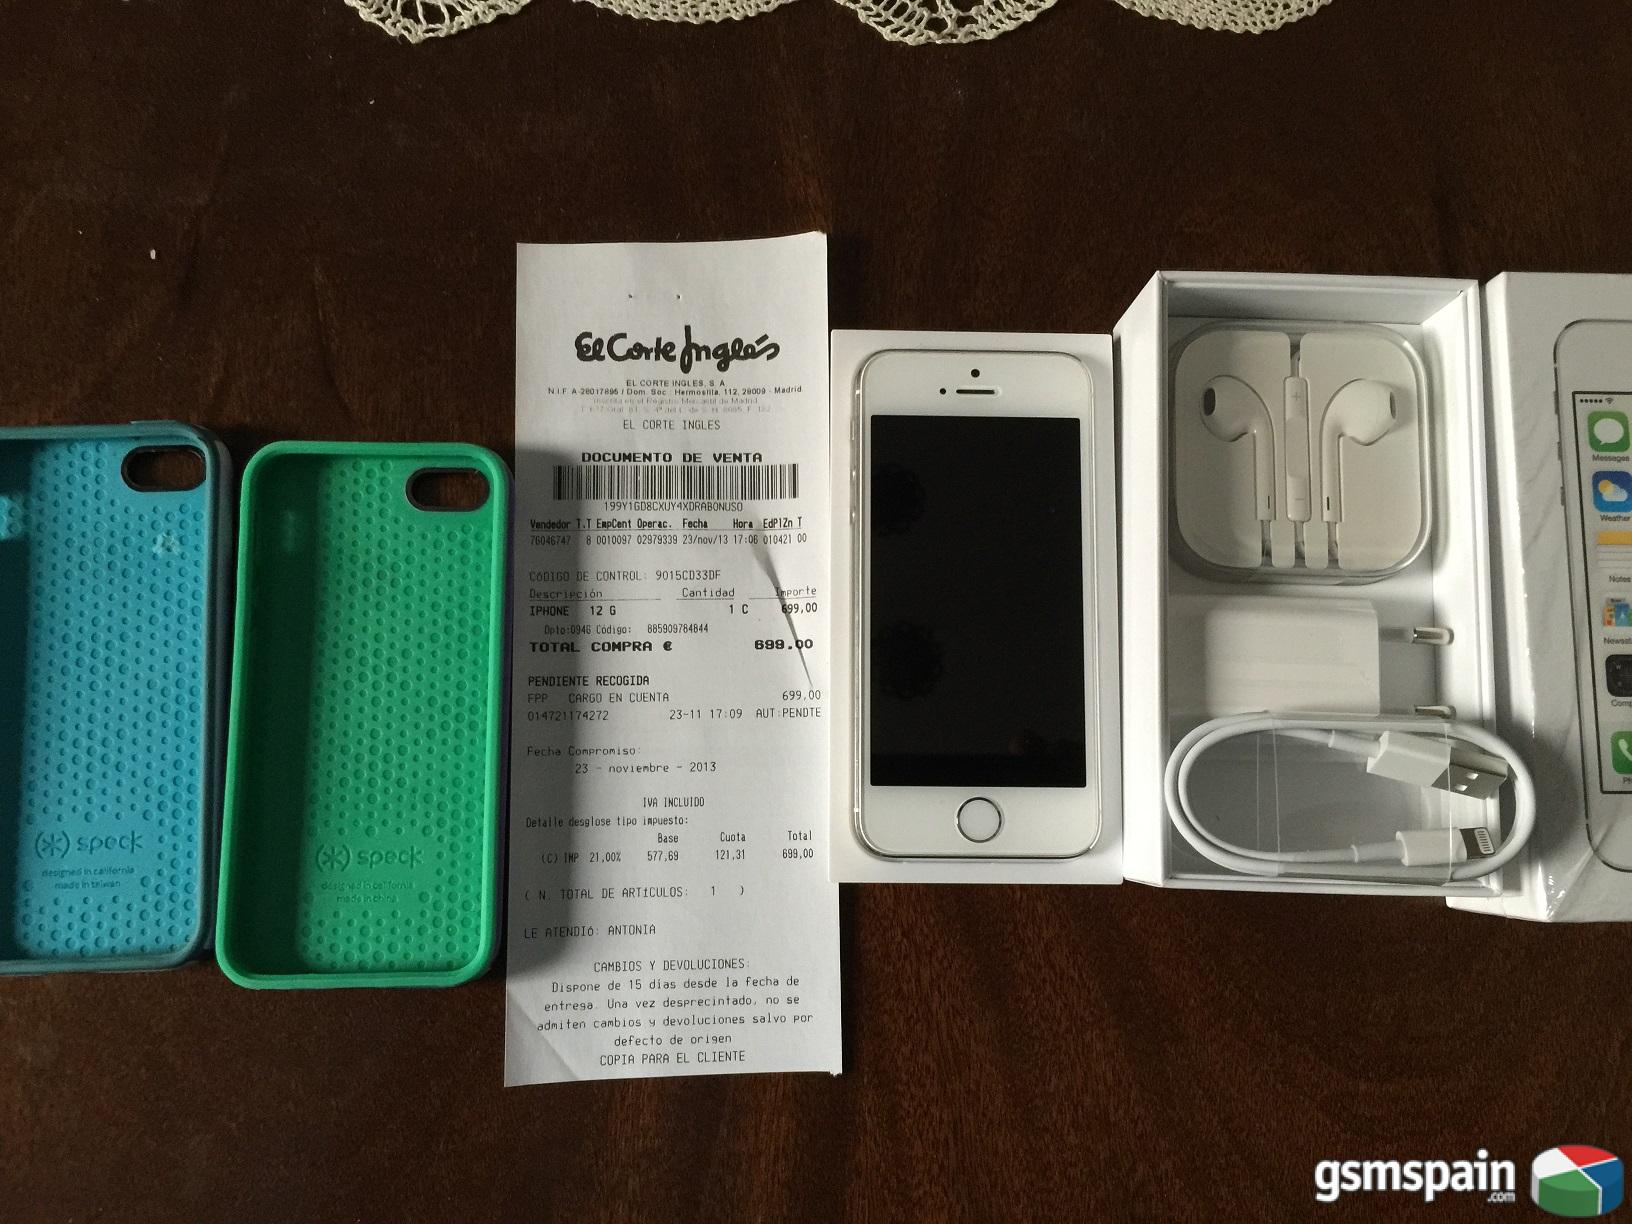 Precio De Iphone 5s Libre Vendo Iphone 5s 16gb Plata Libre Factura El Corte Ingles